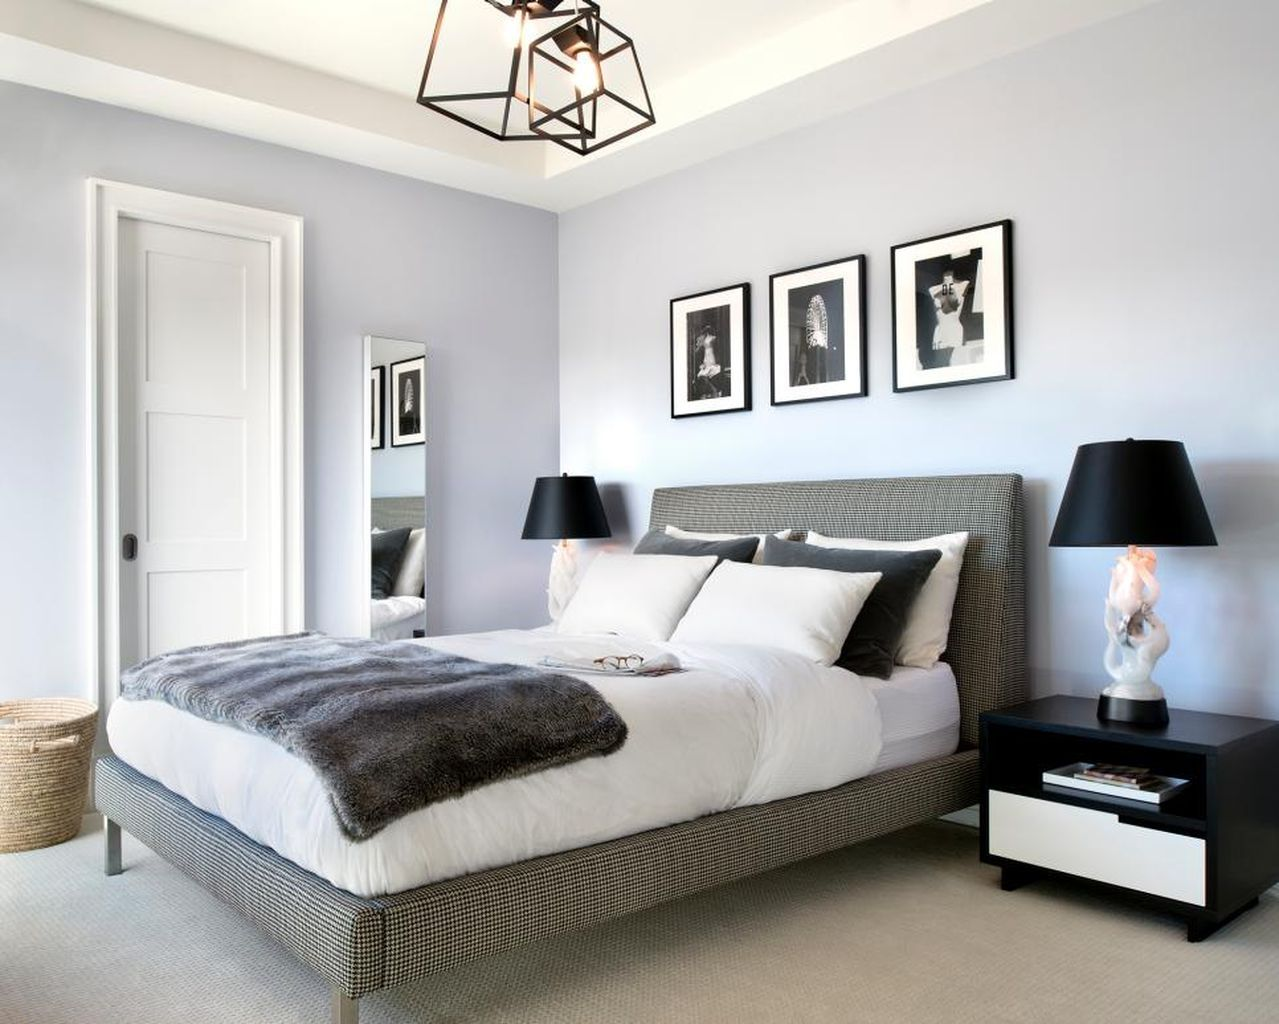 Couples Bedroom Designs Glamorous 88 Romantic Black And White Bedroom Ideas For Couples  Black Decorating Design